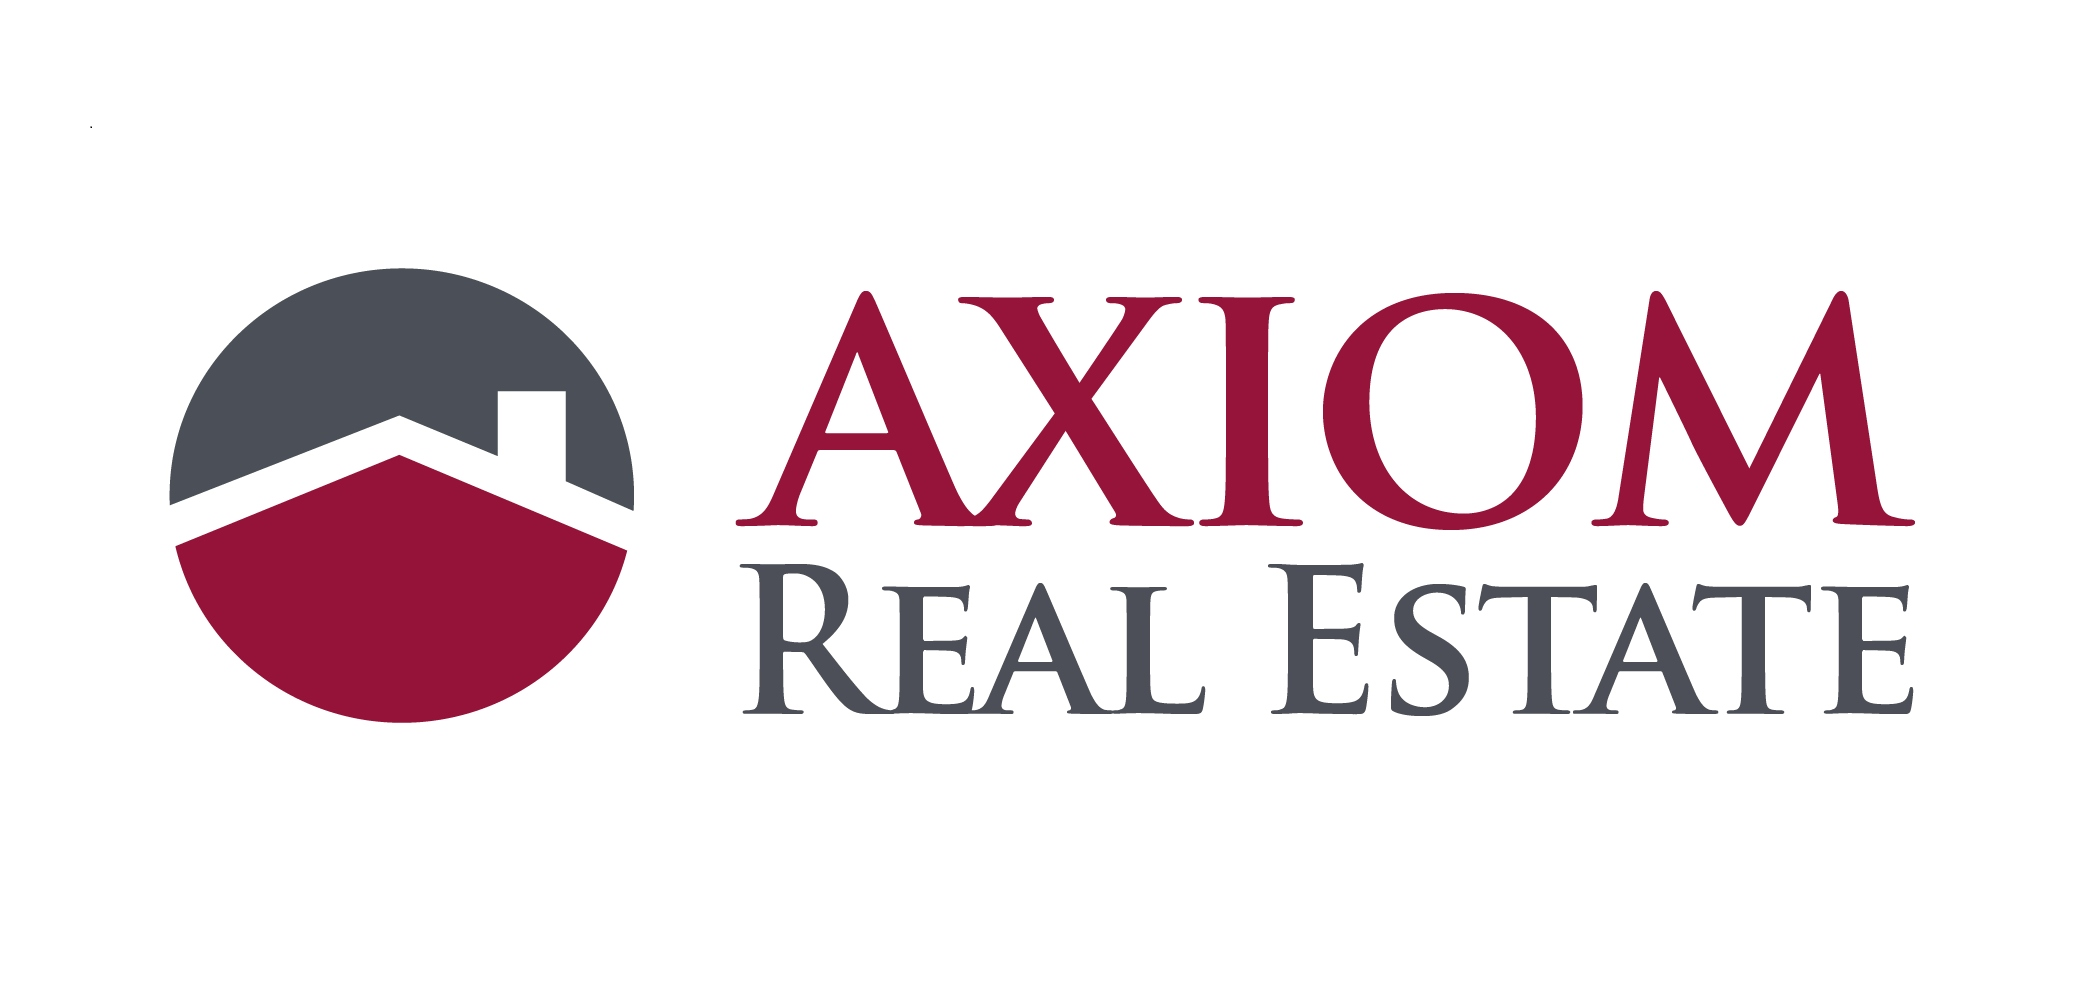 Axiom Real Estate logo